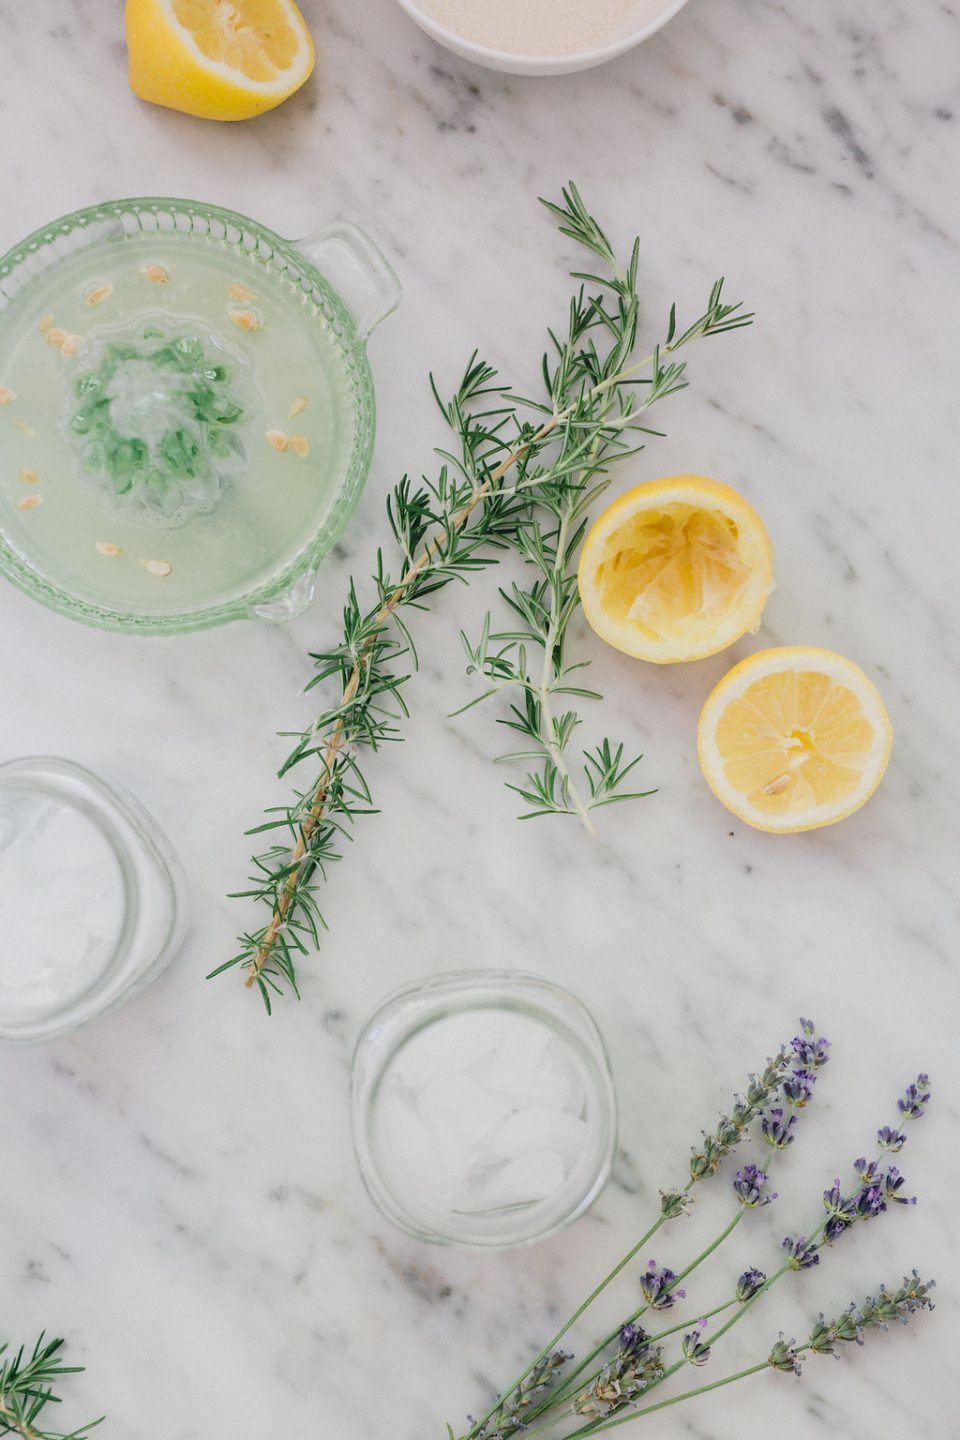 Rosemary and Lavender Infused Lemonade - Cheetah is the ...